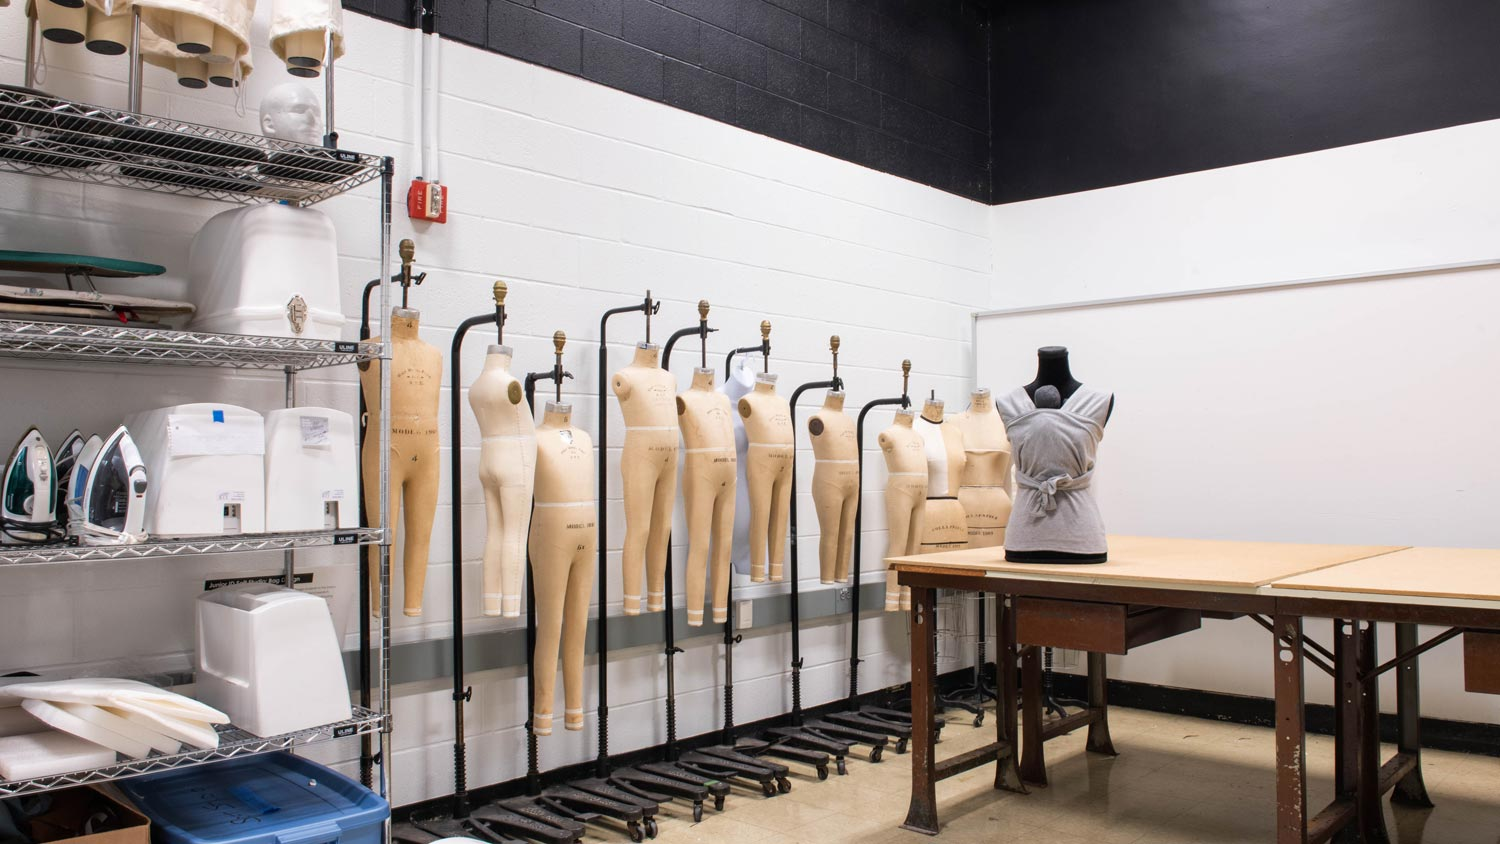 Room with clothing mannequins ready to be dressed